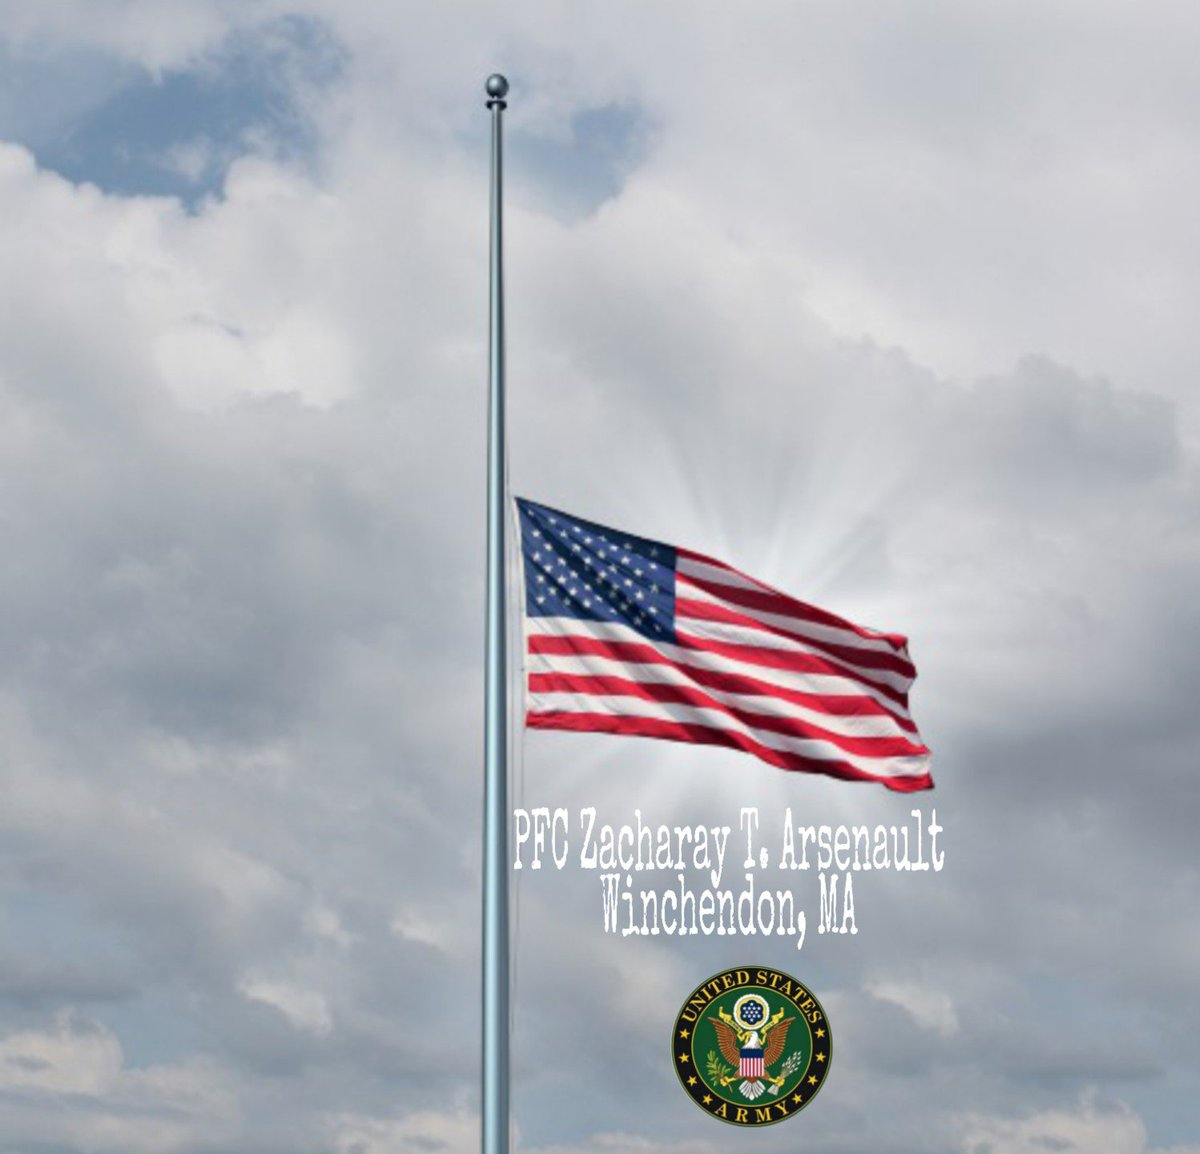 Half Staff Notice:  Massachusetts Governor Charlie Baker has ordered United States & Commonwealth flags lowered to half staff on Saturday, April 20, 2019, in honor of @USArmy PFC Zacharay T. Arsenault of Winchendon, Massachusetts.   https://www.stone-ladeau.com/notices/ZacharayT-Arsenault… – at Massachusetts Department of Veterans Services